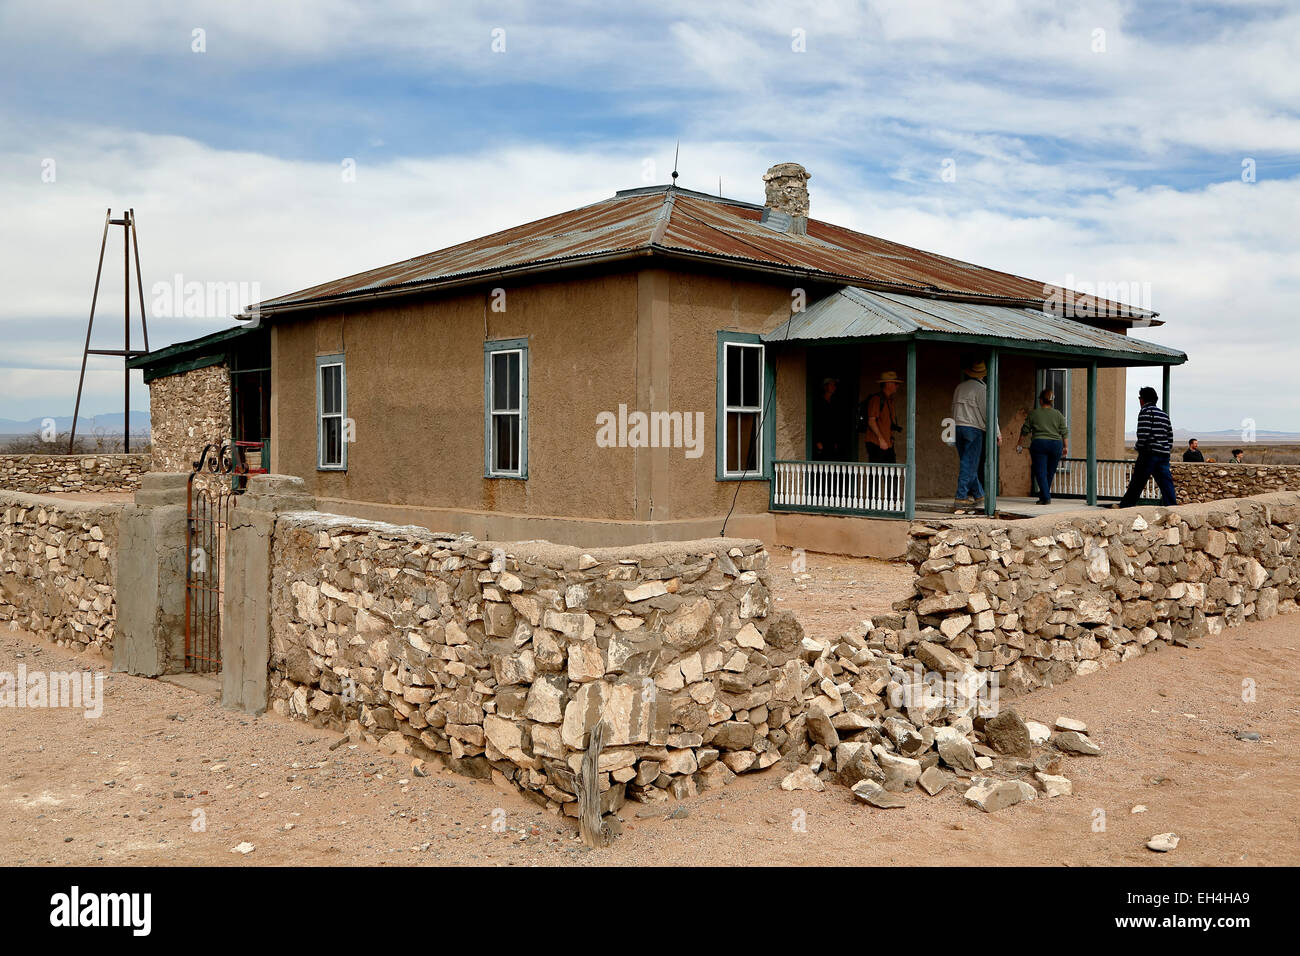 Visitors at Schmidt McDonald Ranch House, Trinity Site (first nuclear explosion, 1945), New Mexico USA - Stock Image